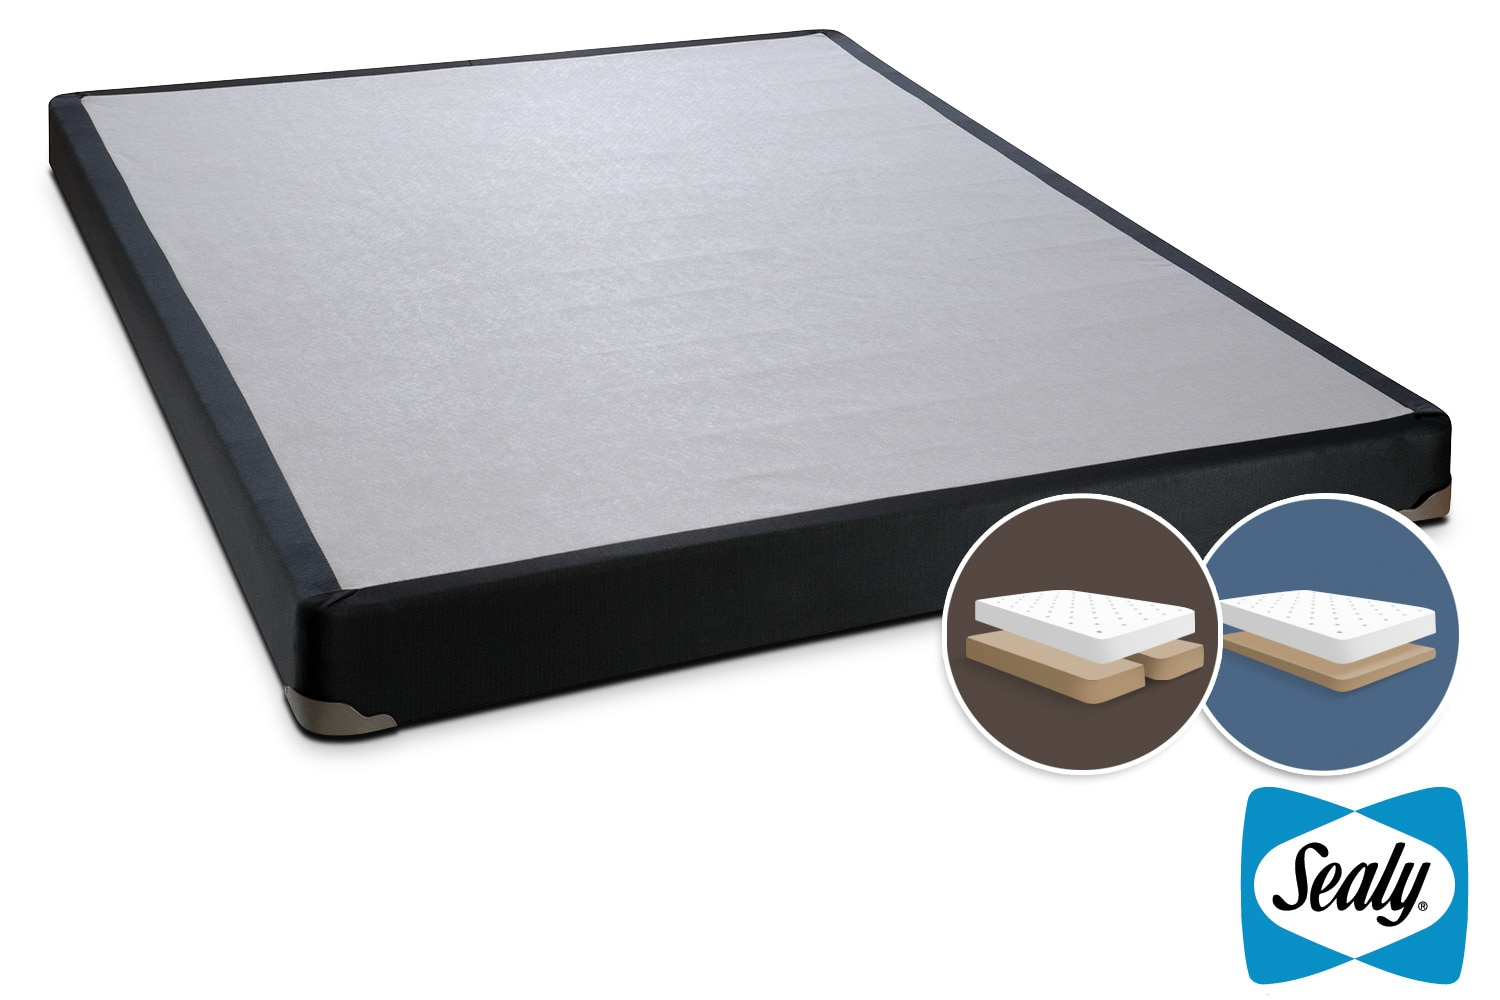 Mattresses and Bedding - Sealy Charcoal Luxe King Split Low-Profile Boxspring